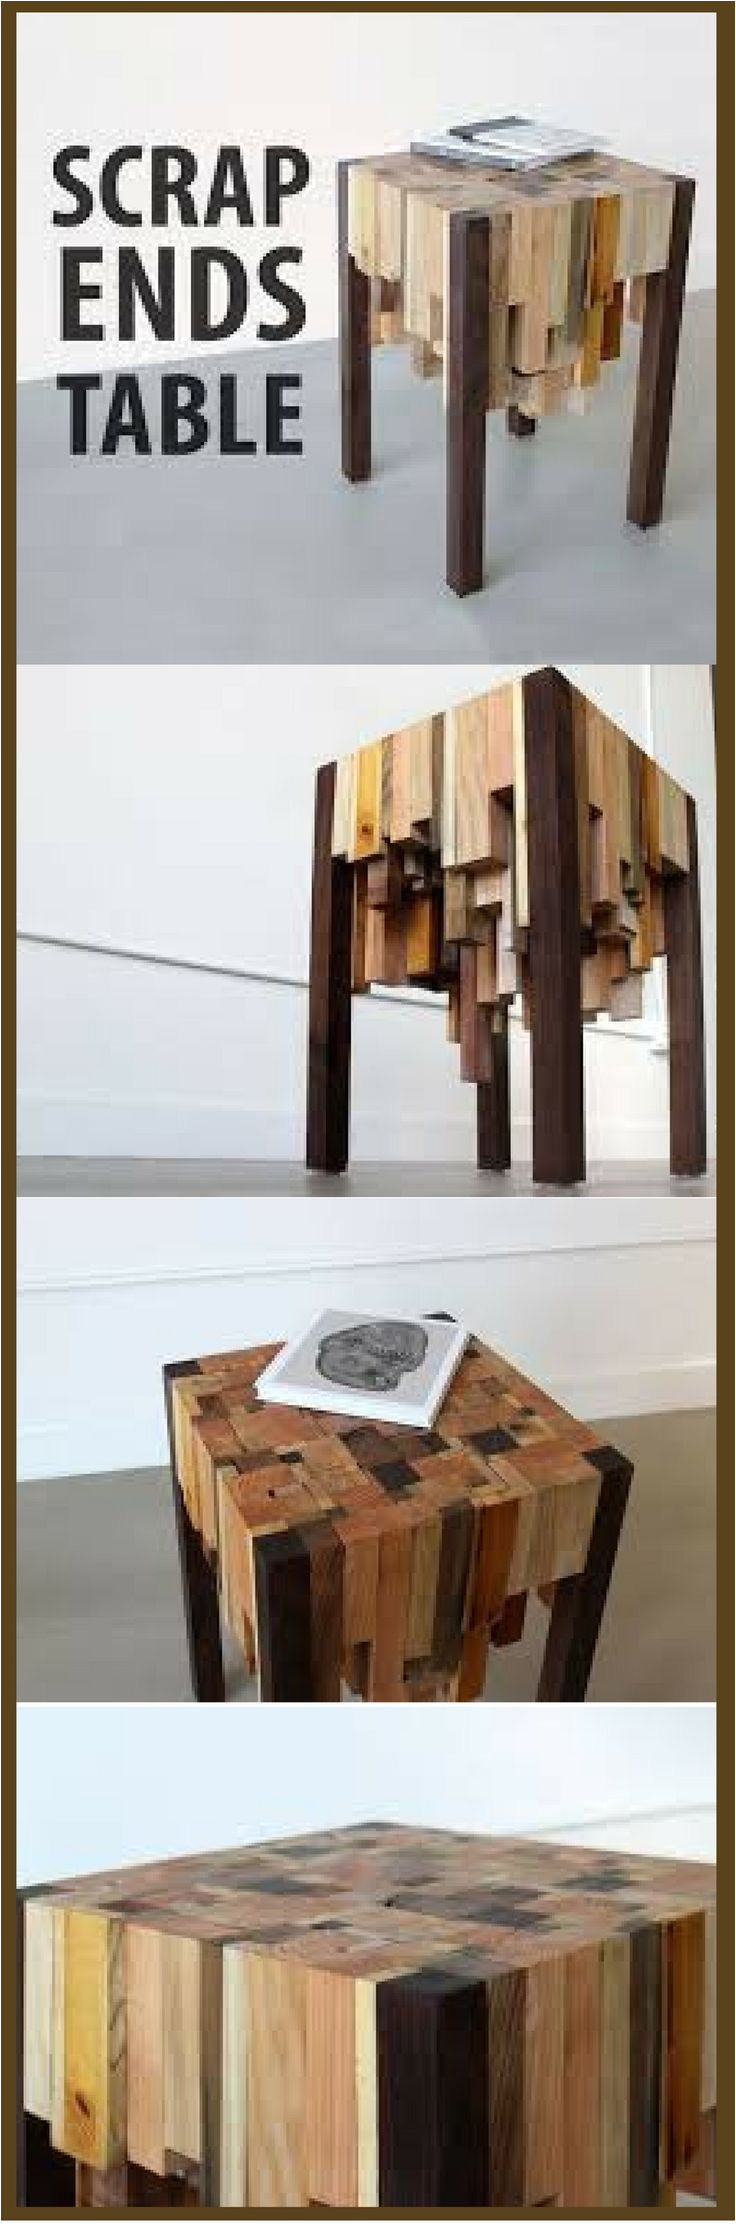 make a great little table with scrap ends waste not want not http